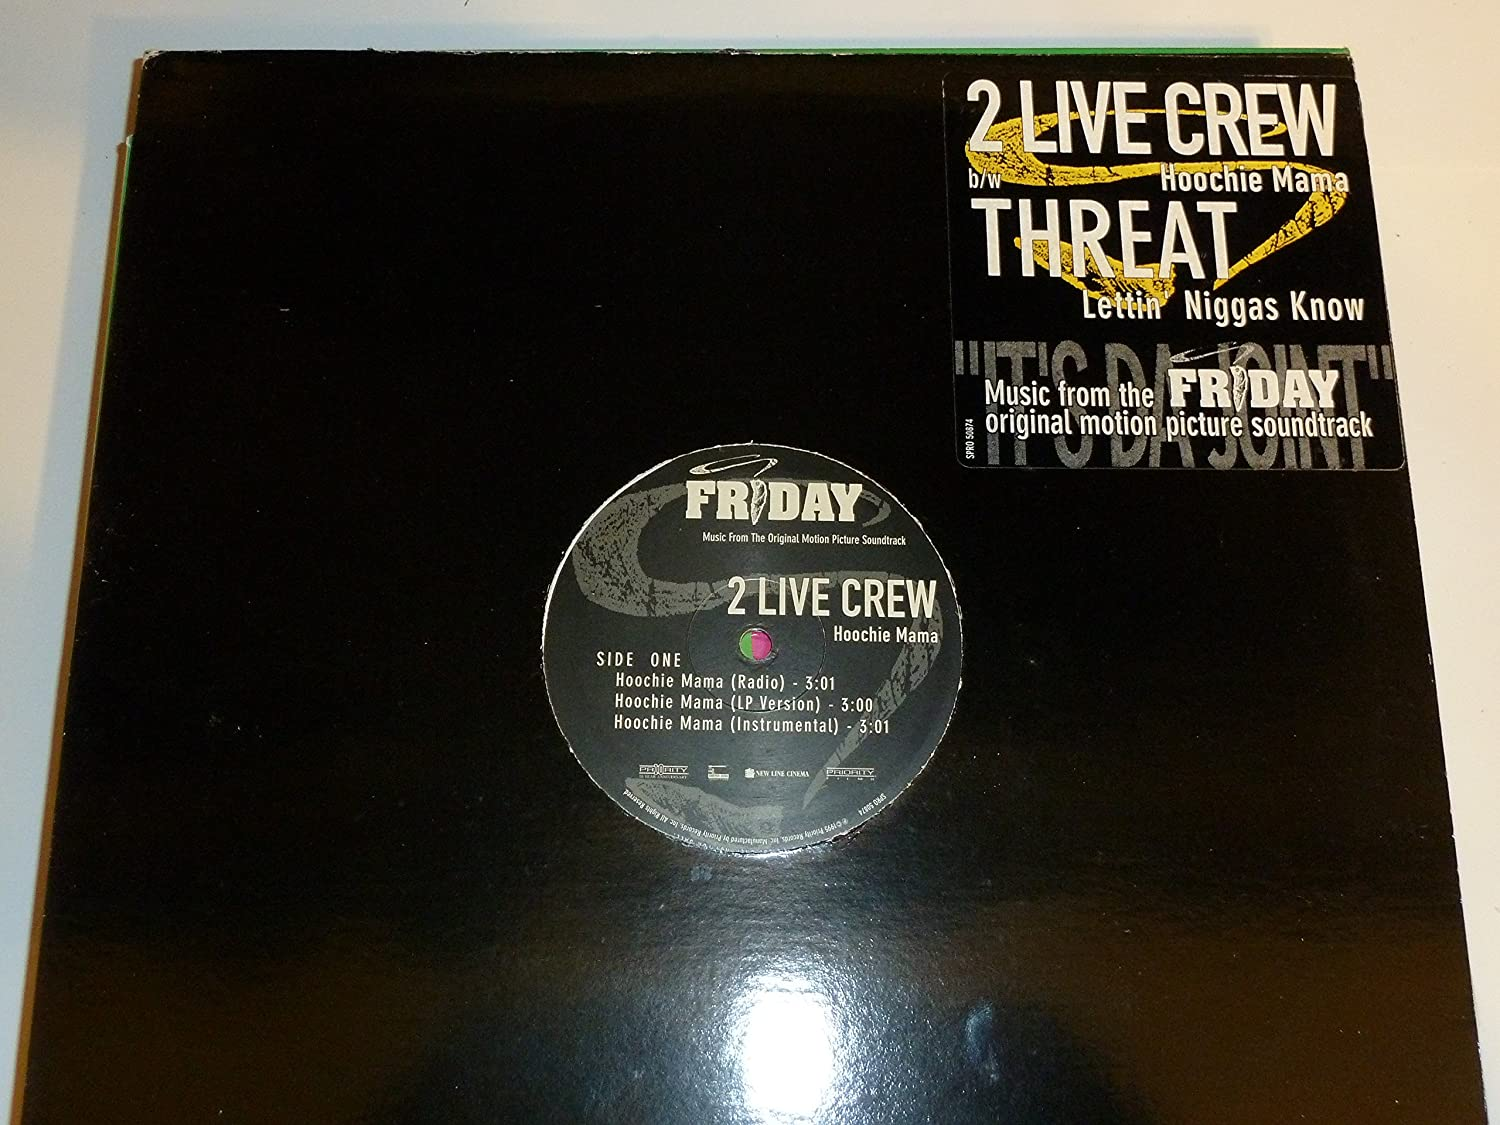 2 Live Crew Hoochie Mama Threat Music From The Motion Picture Friday Amazon Com Music Let me see ya touch the ground! crew hoochie mama threat music